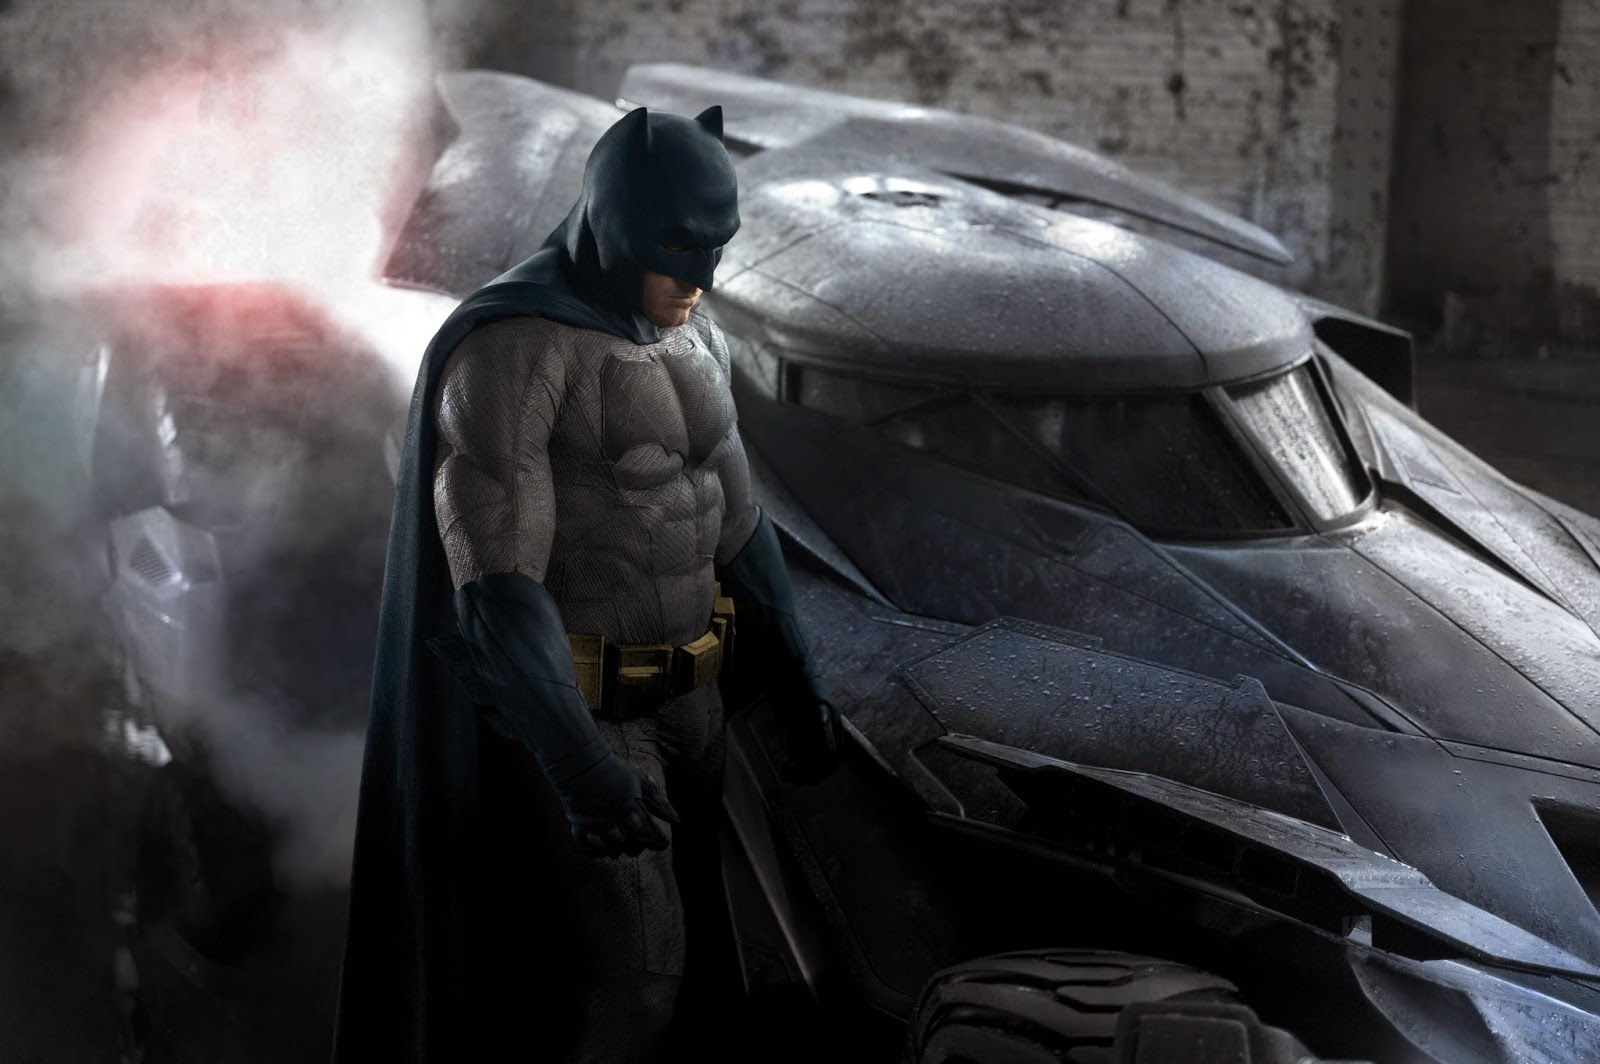 New Ben Affleck Batman Suit and Batmobile